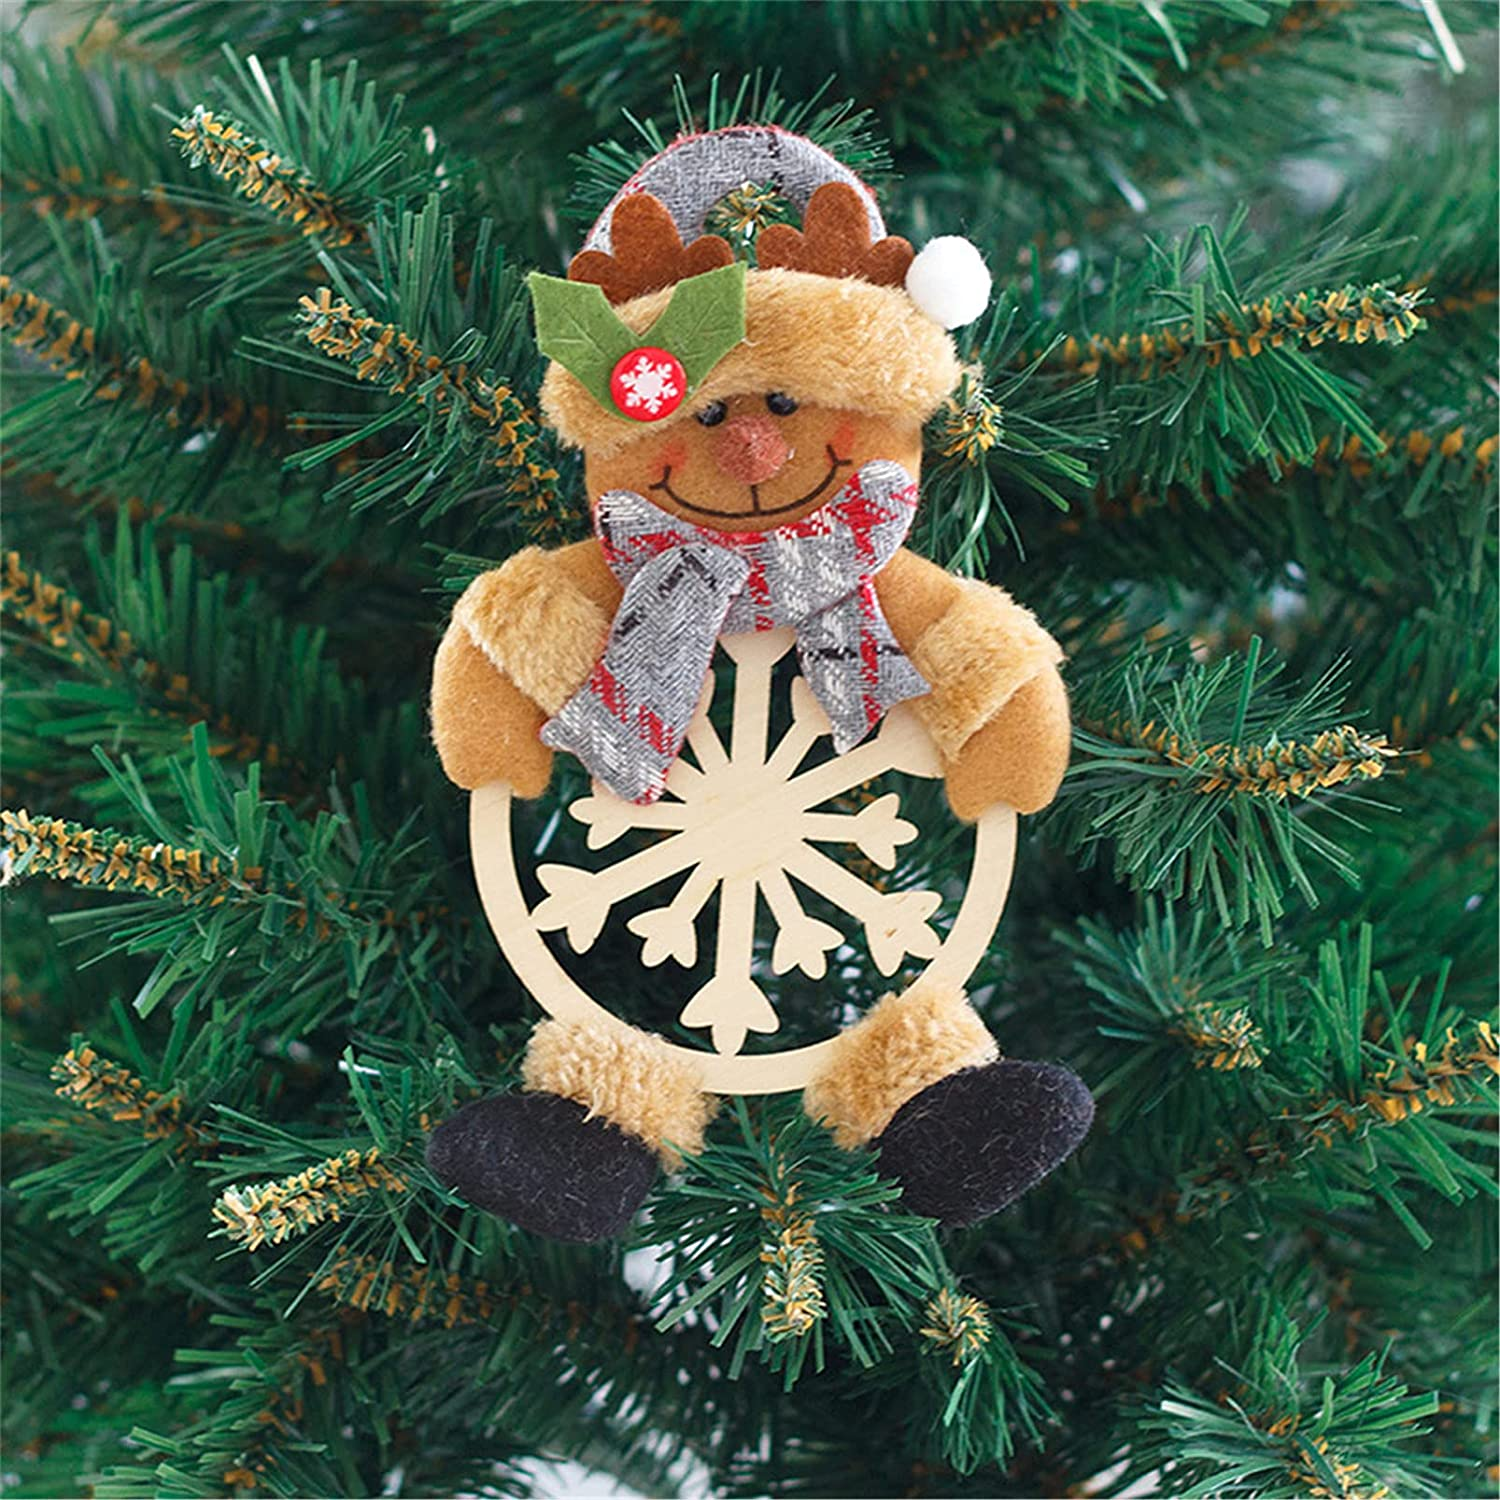 ZRSYH Christmas safety Tree Decorations Choice Wooden Pendant Openwork Snowfla